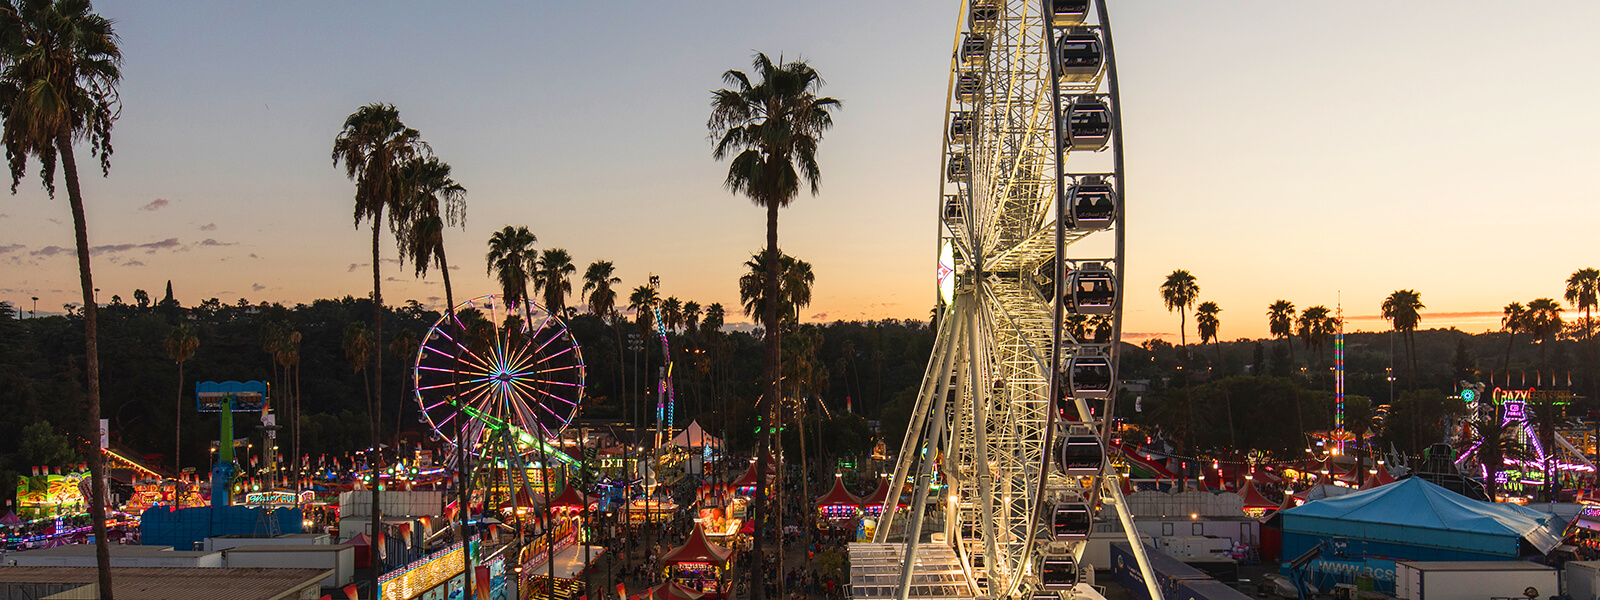 LA County Fair Aug. 30 - Sept. 22